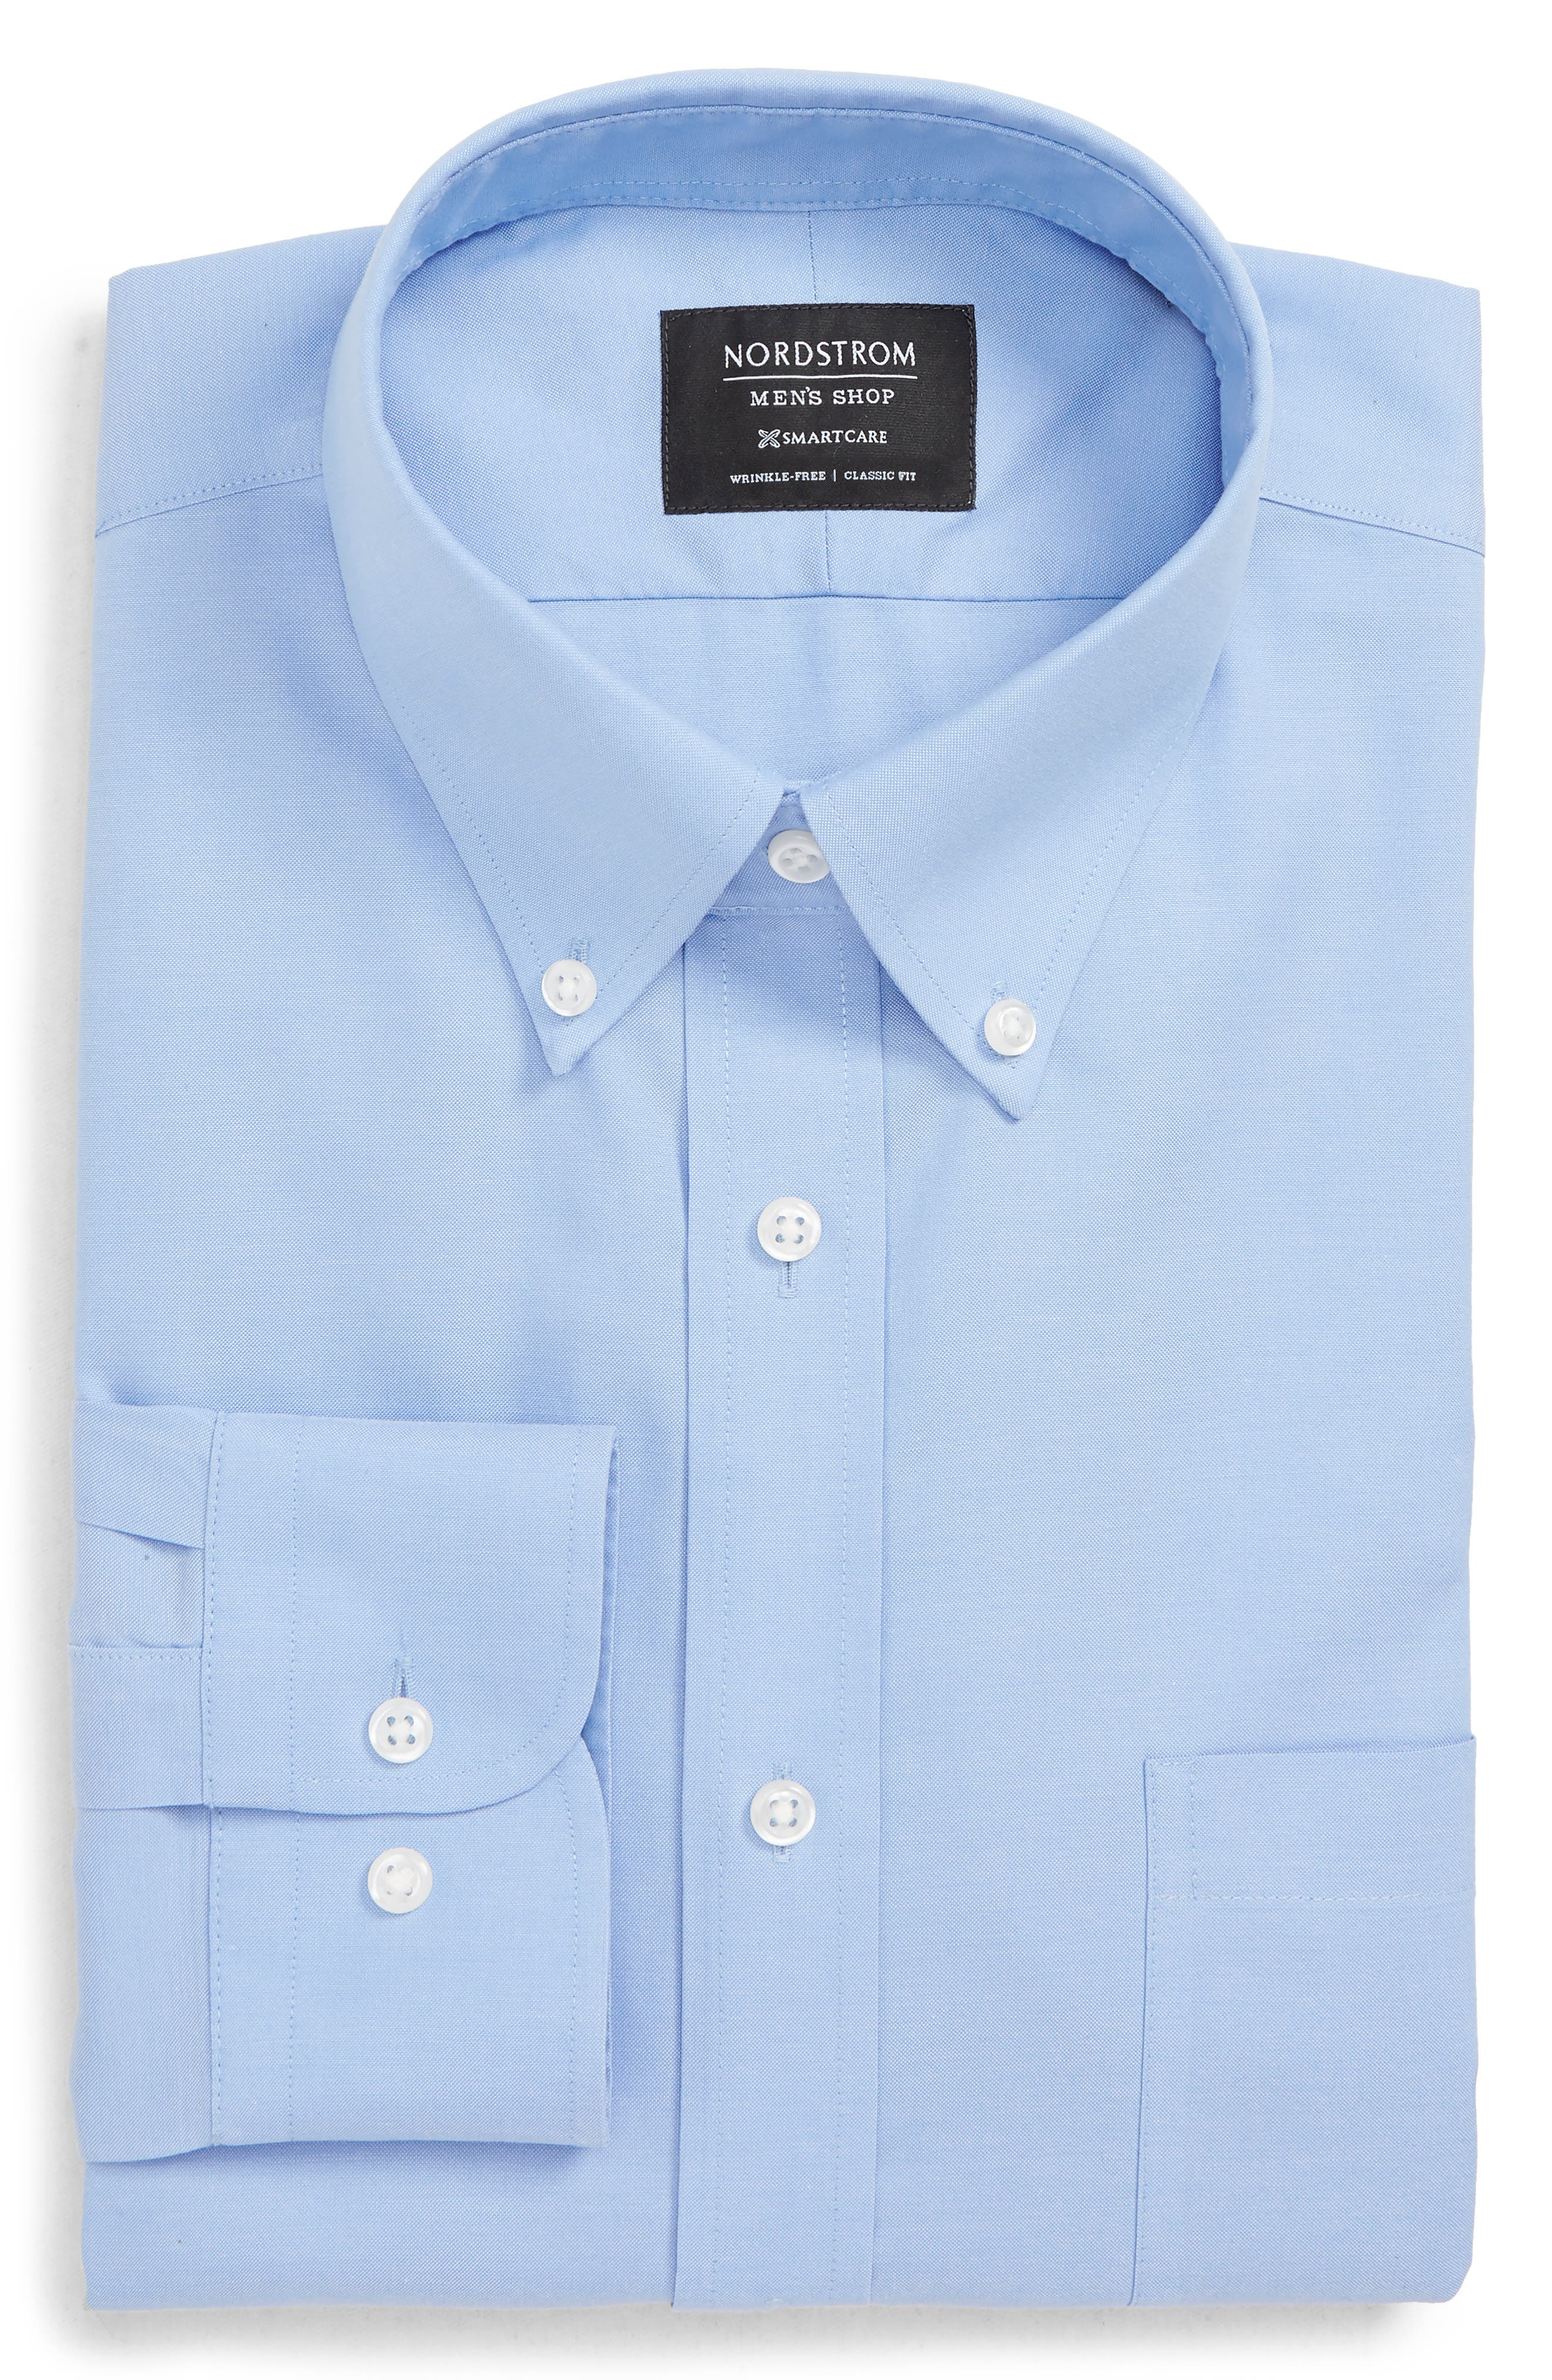 Nordstrom Shop Smartcare(TM) Classic Fit Dress Shirt - Blue